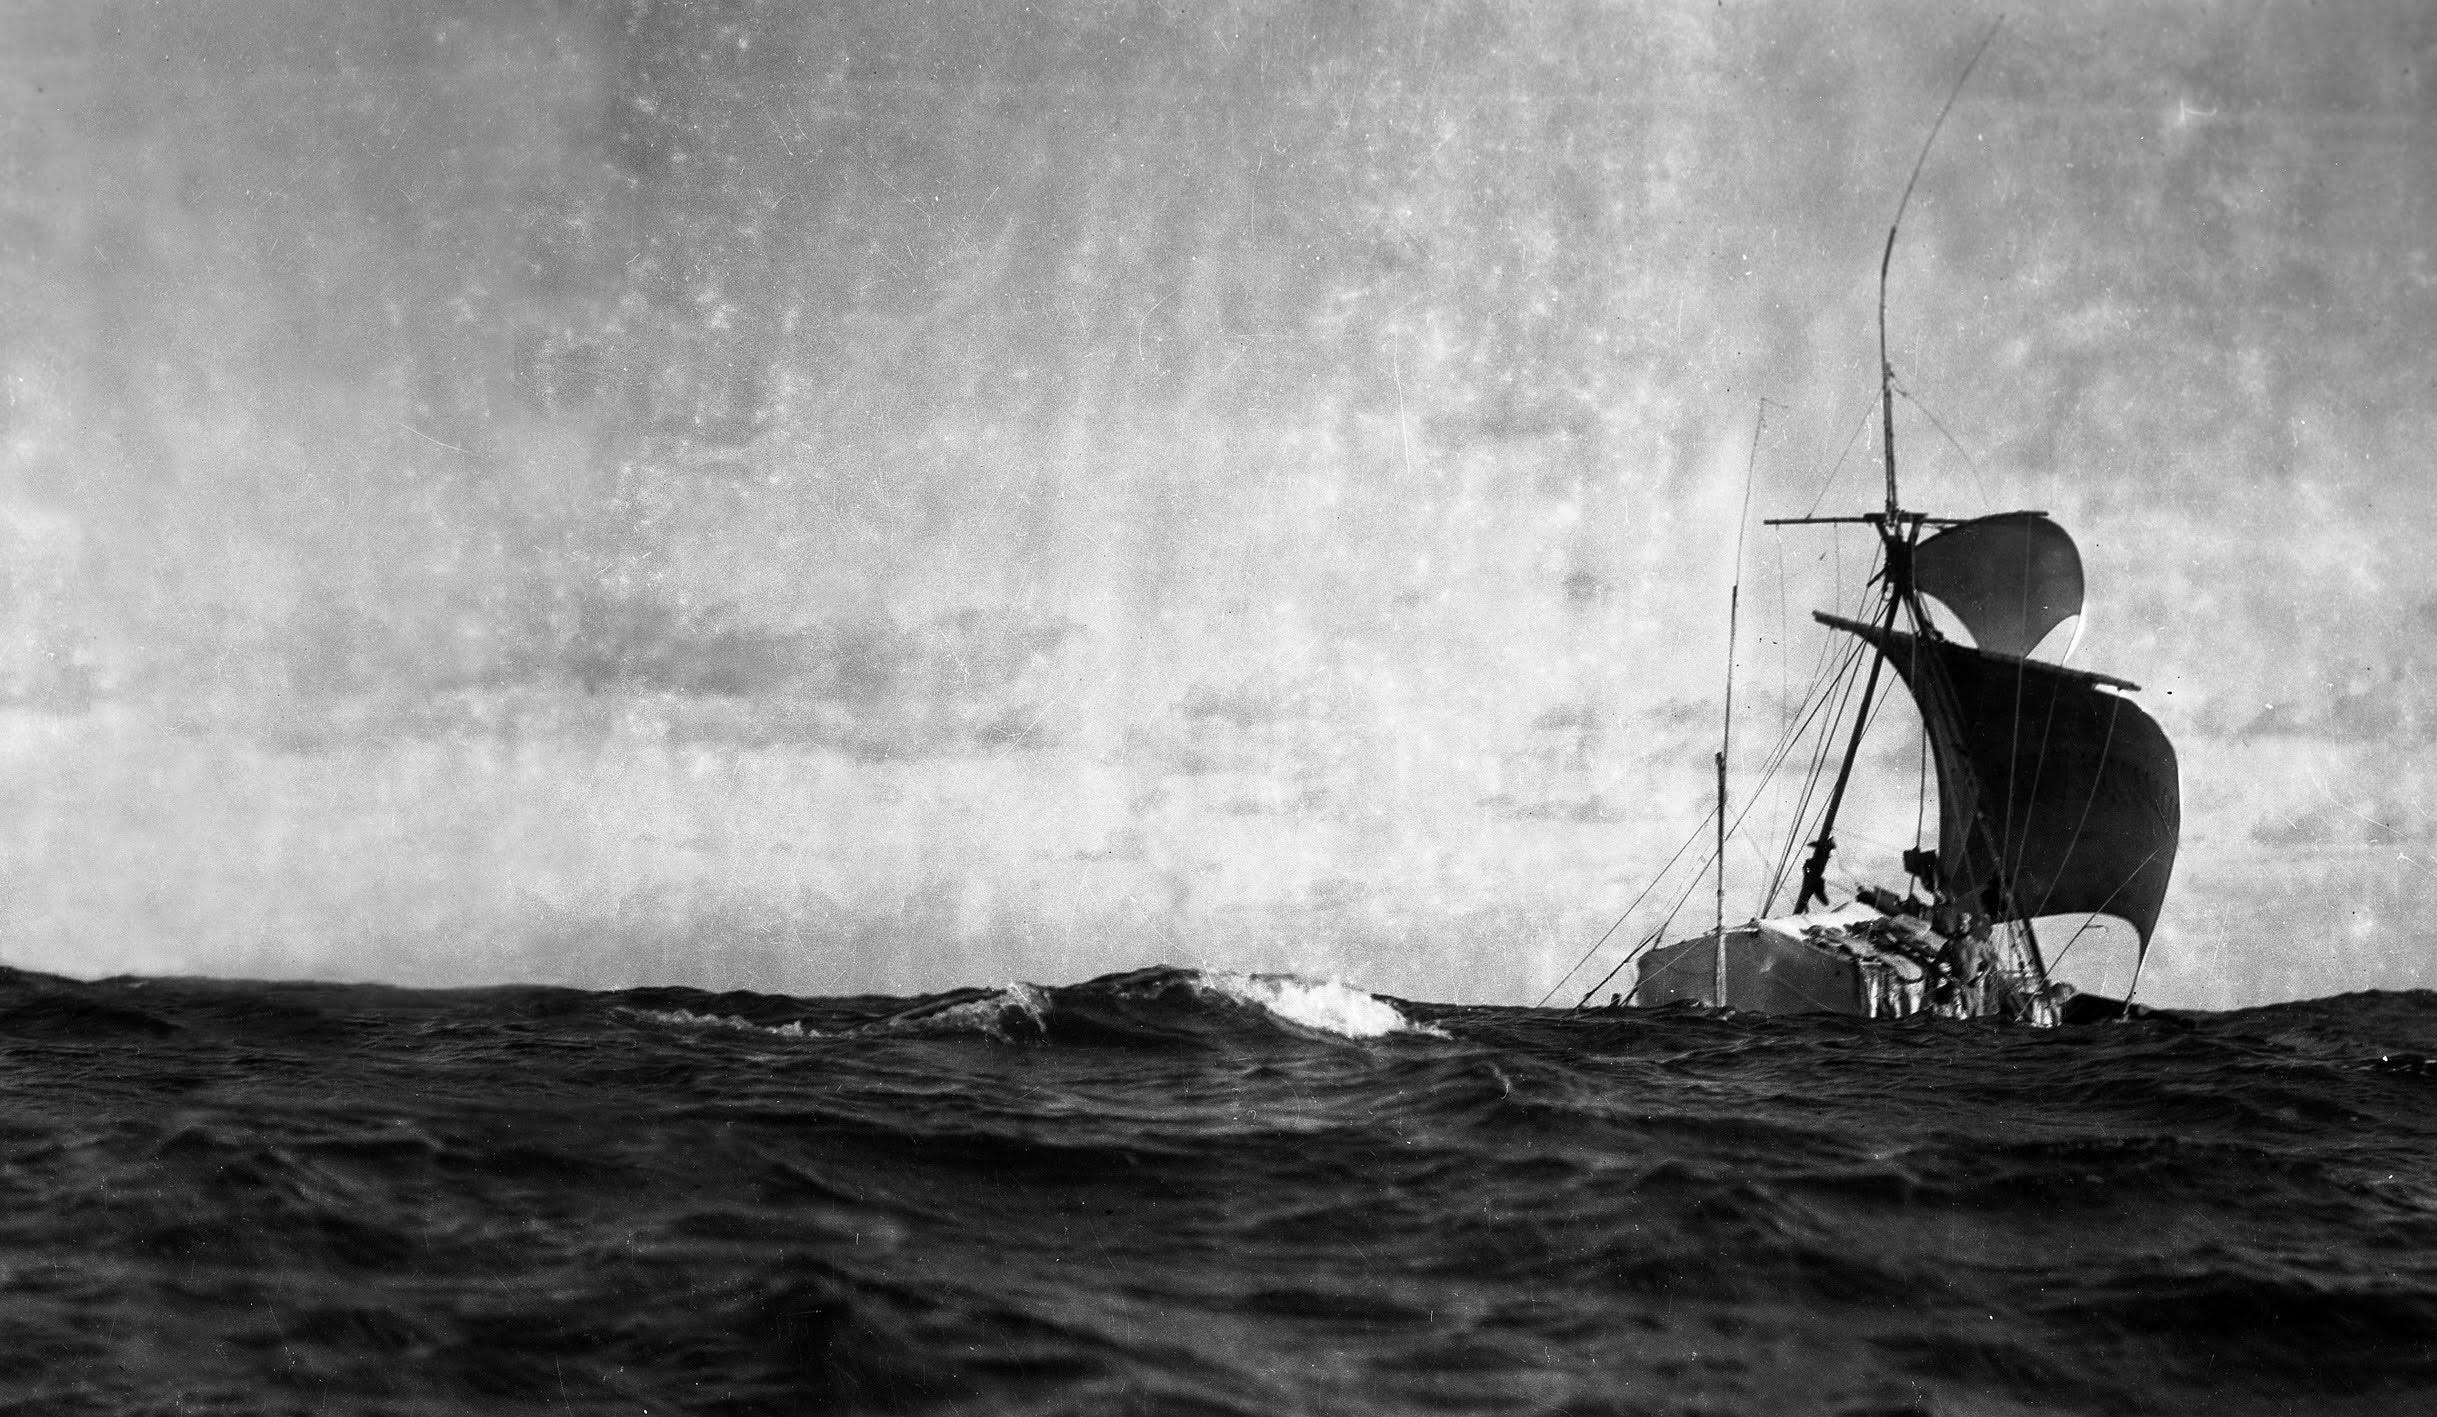 Thor Heyerdahl and the Theory of the Archaeological Raft